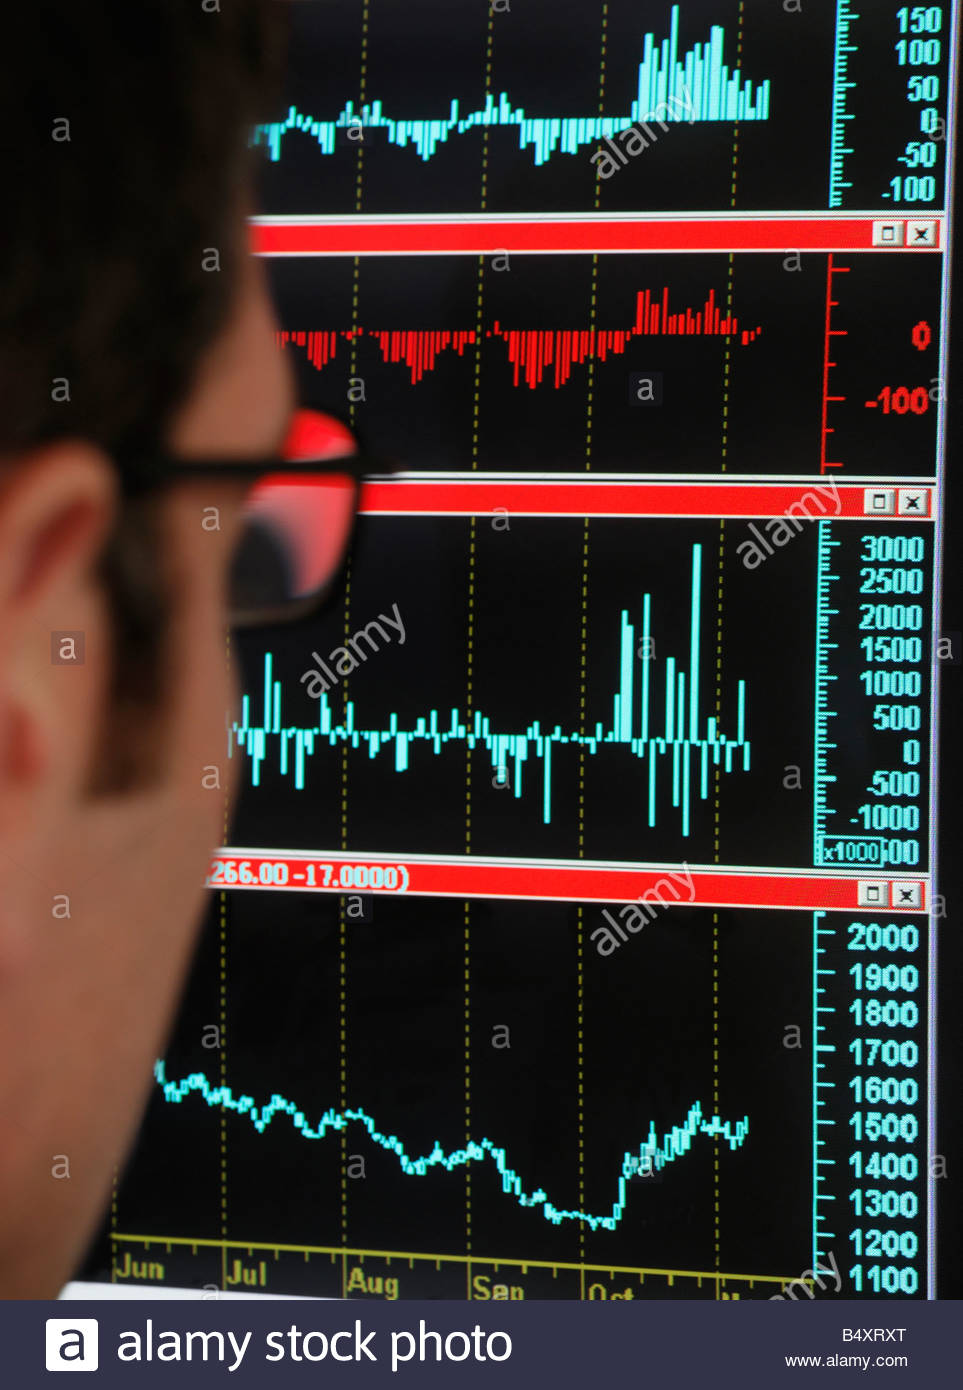 Traders Vertical Stock Photos Traders Vertical Stock Images   Alamy 963x1390